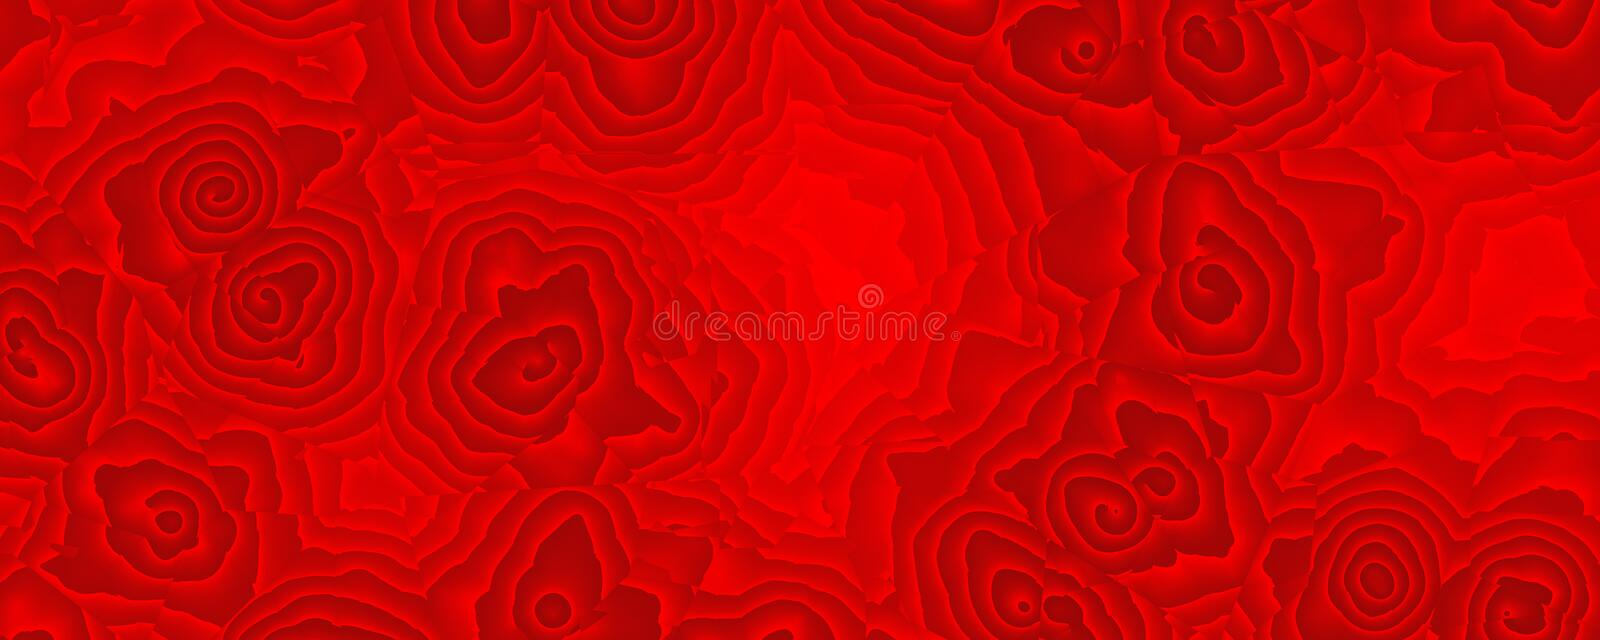 Painting abstract red rose pattern stock photography